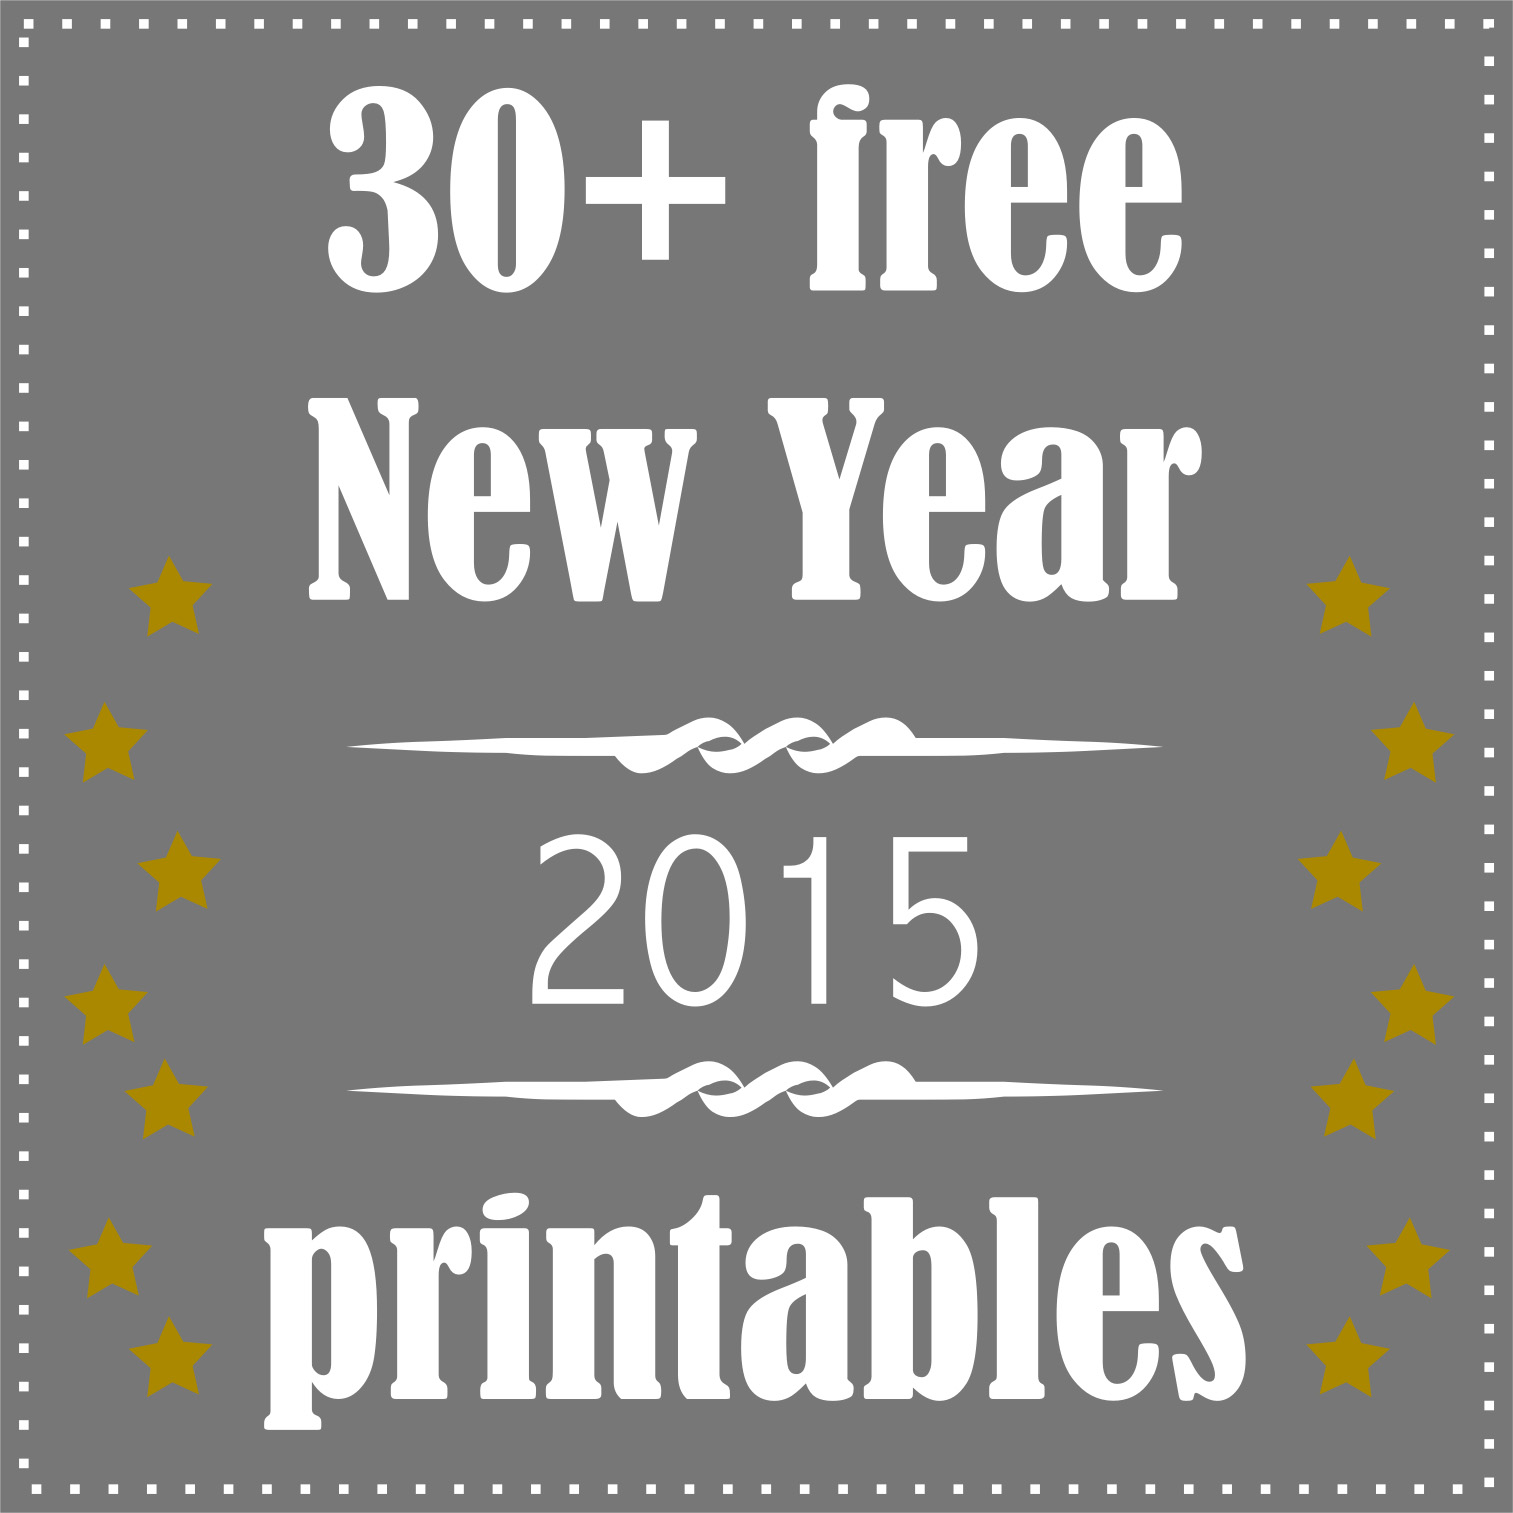 9 Images of Free Printables New Year's Eve 2016